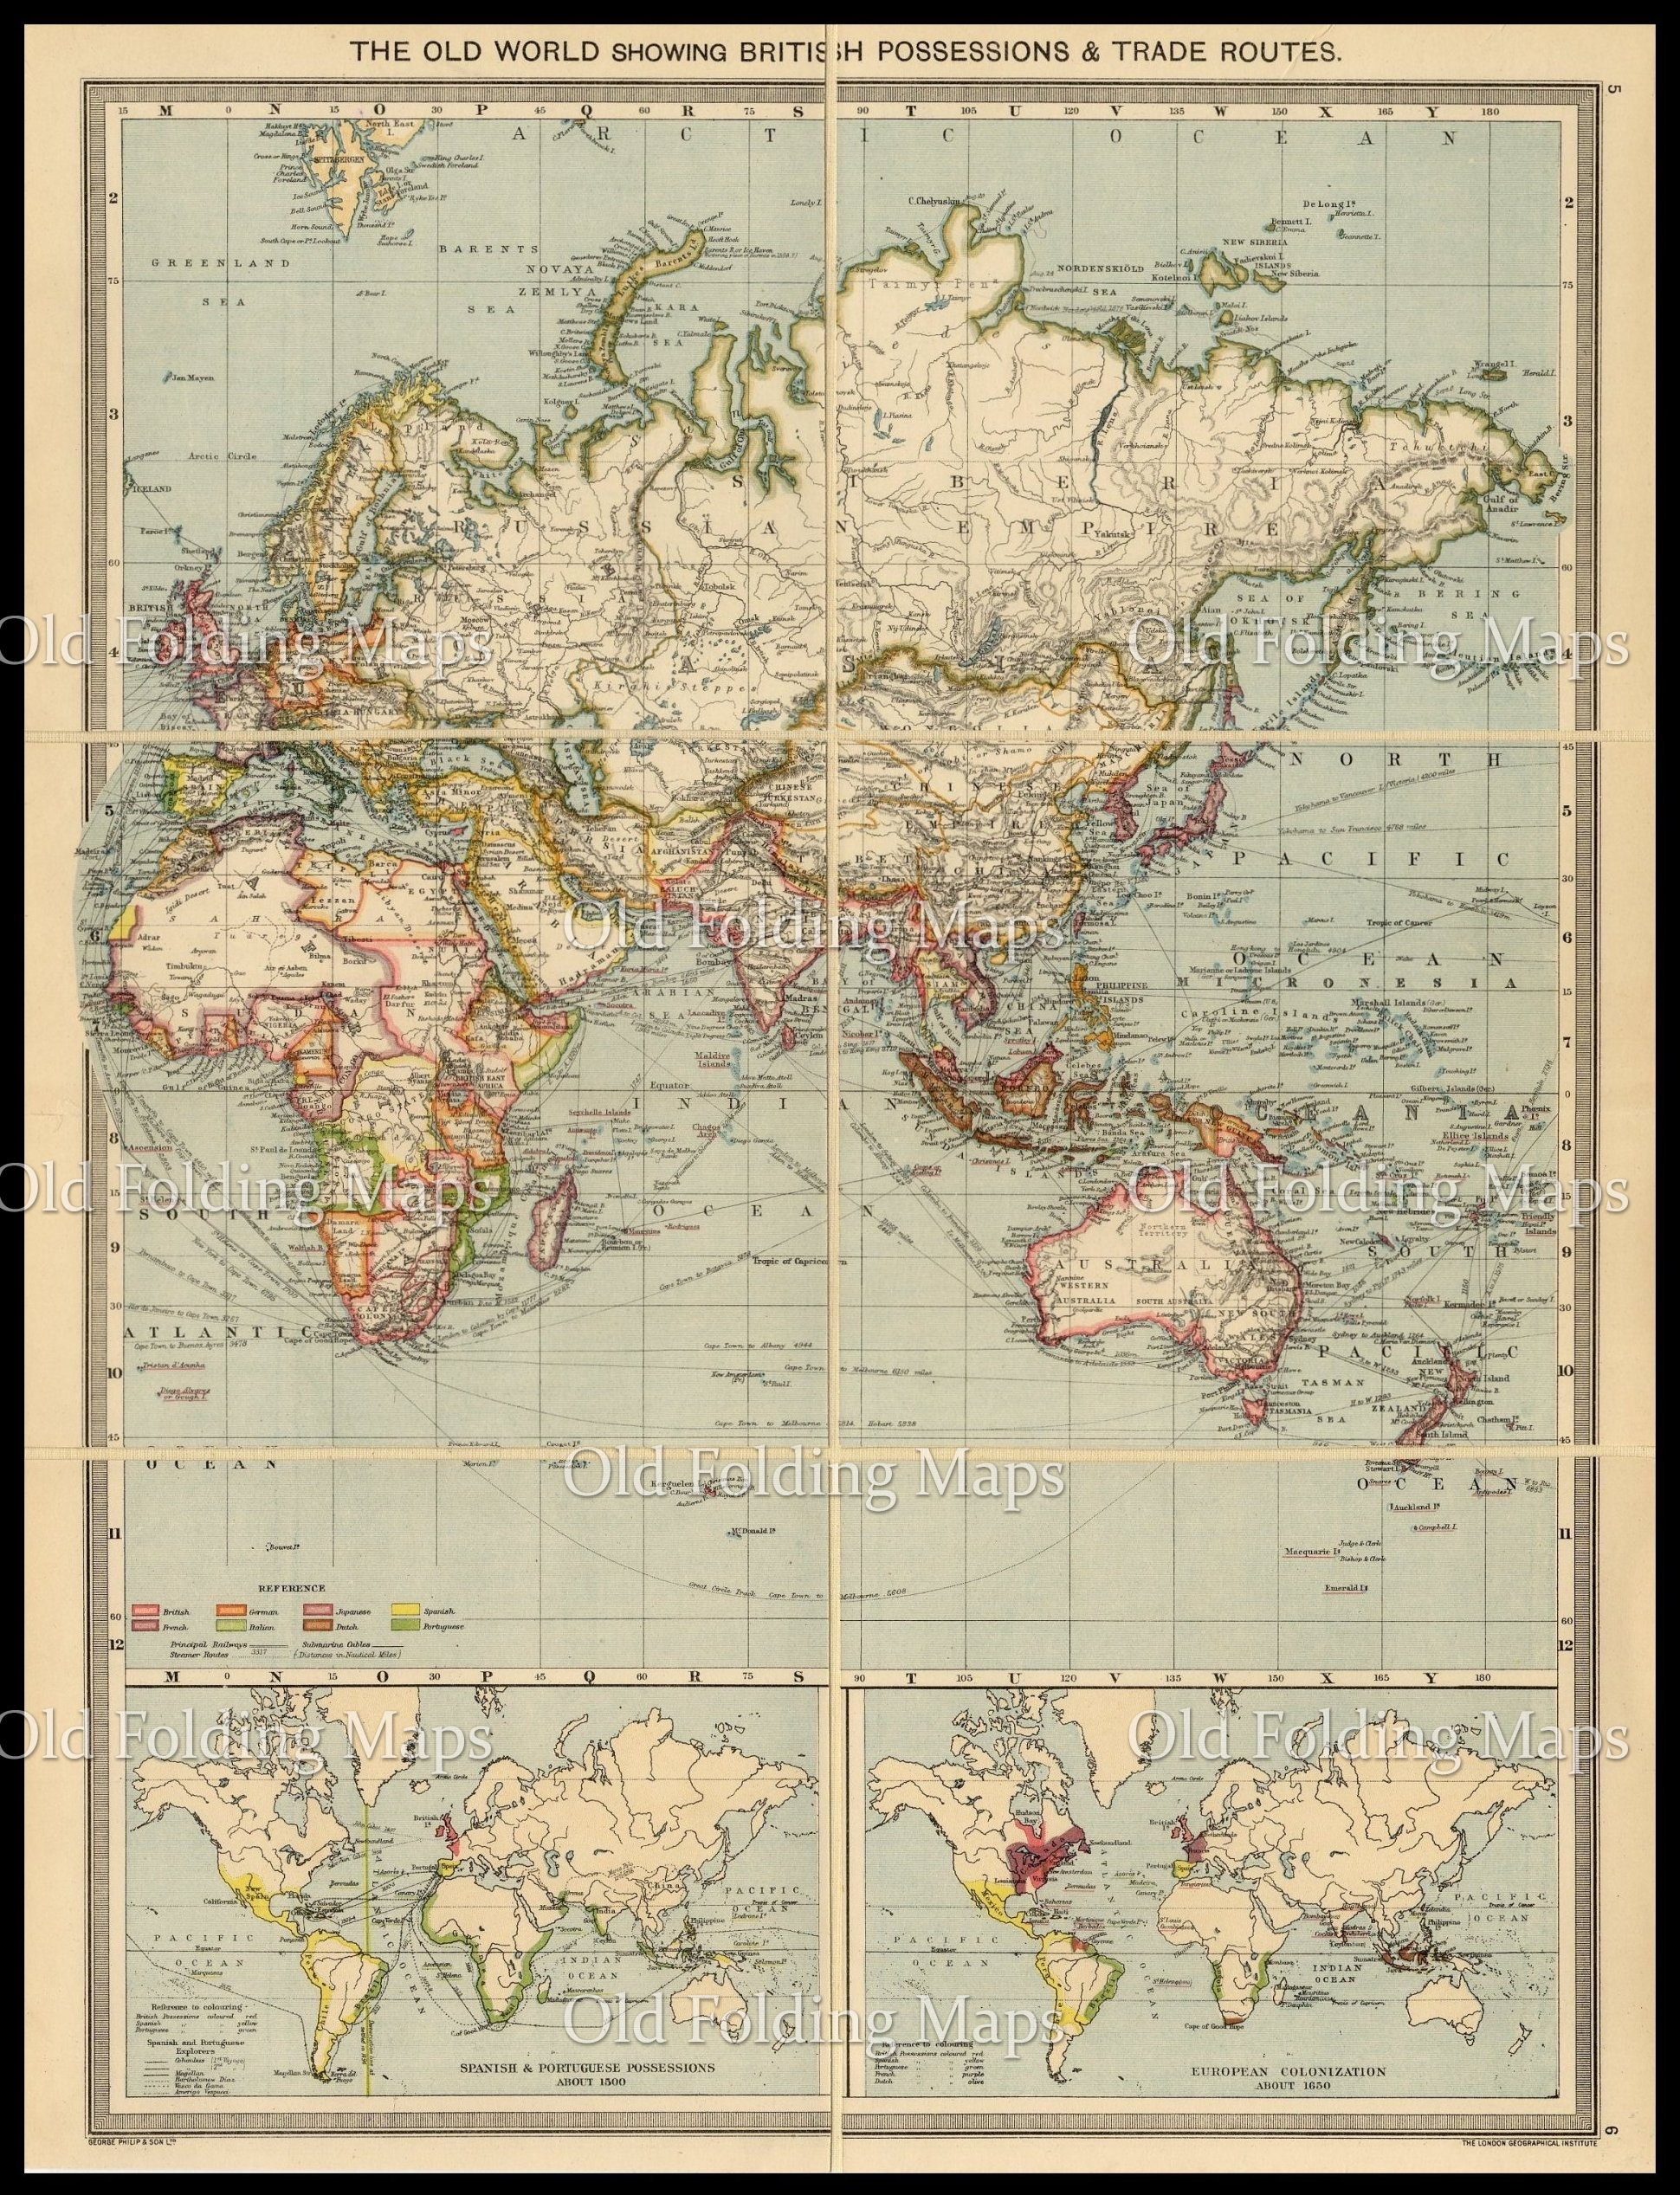 An Antique Map Of The Old World British Possessions Trade Routes